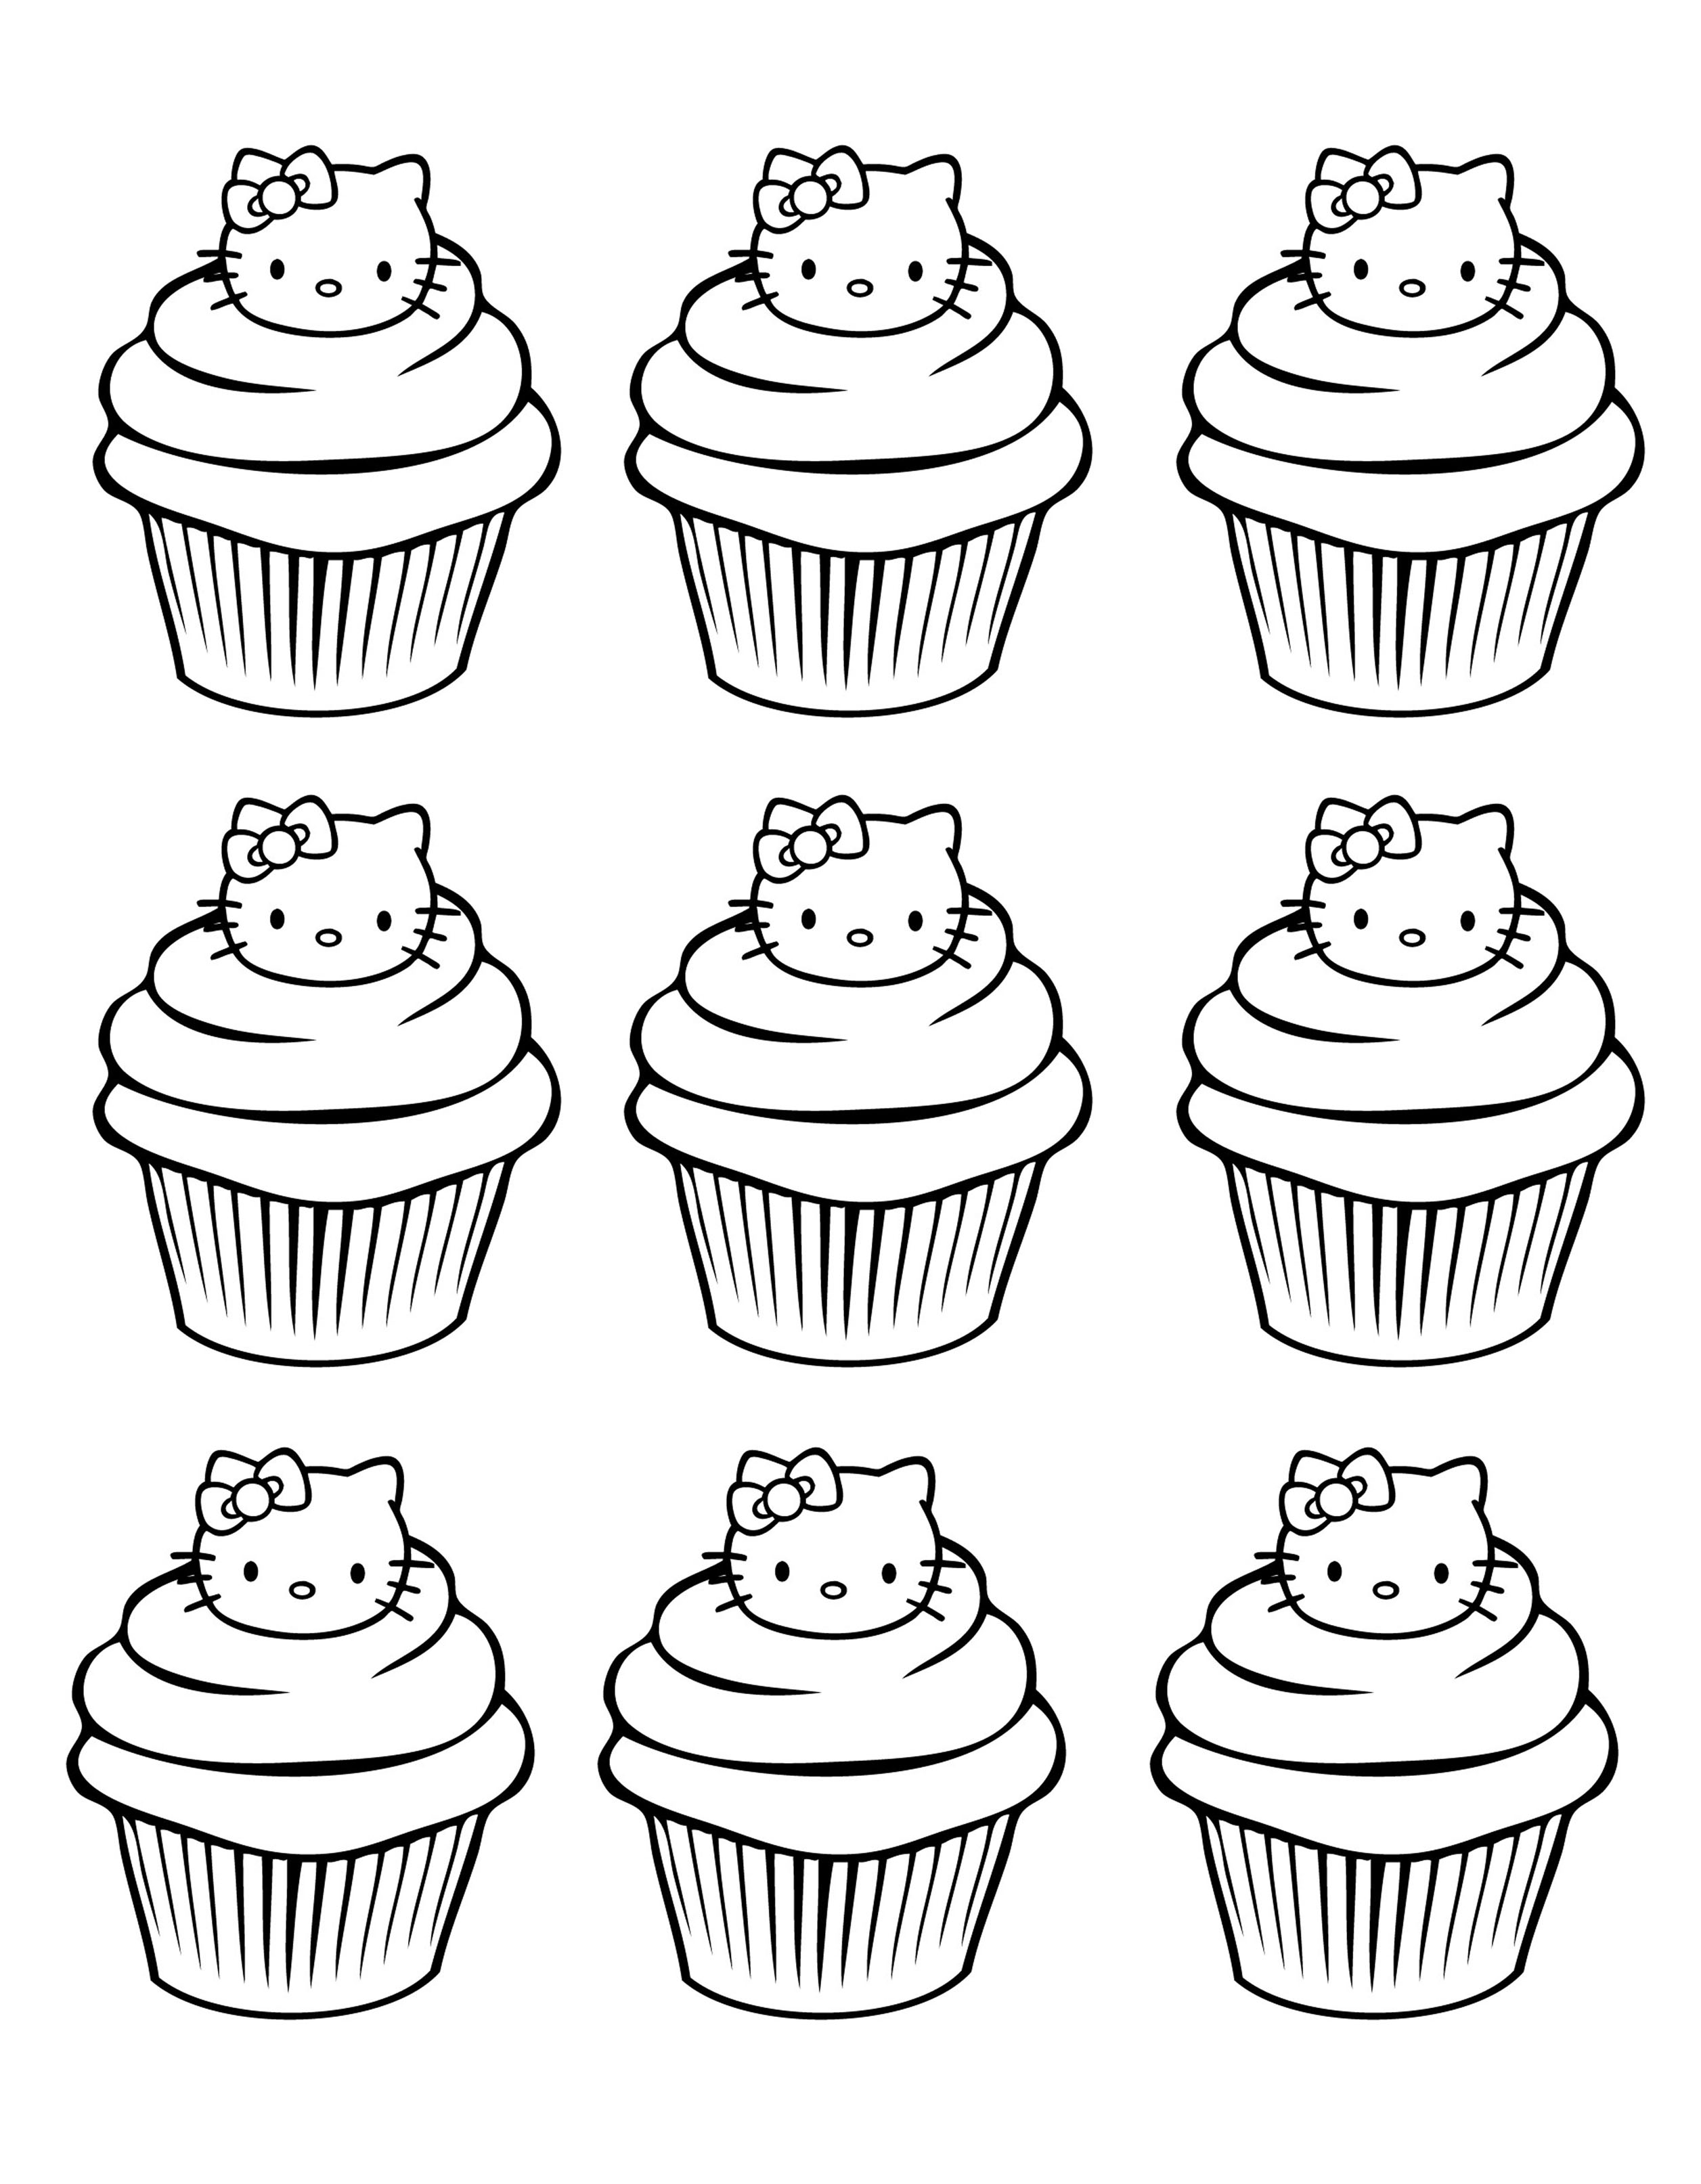 cupcakes hello kitty simple Cup Cakes Coloring pages for